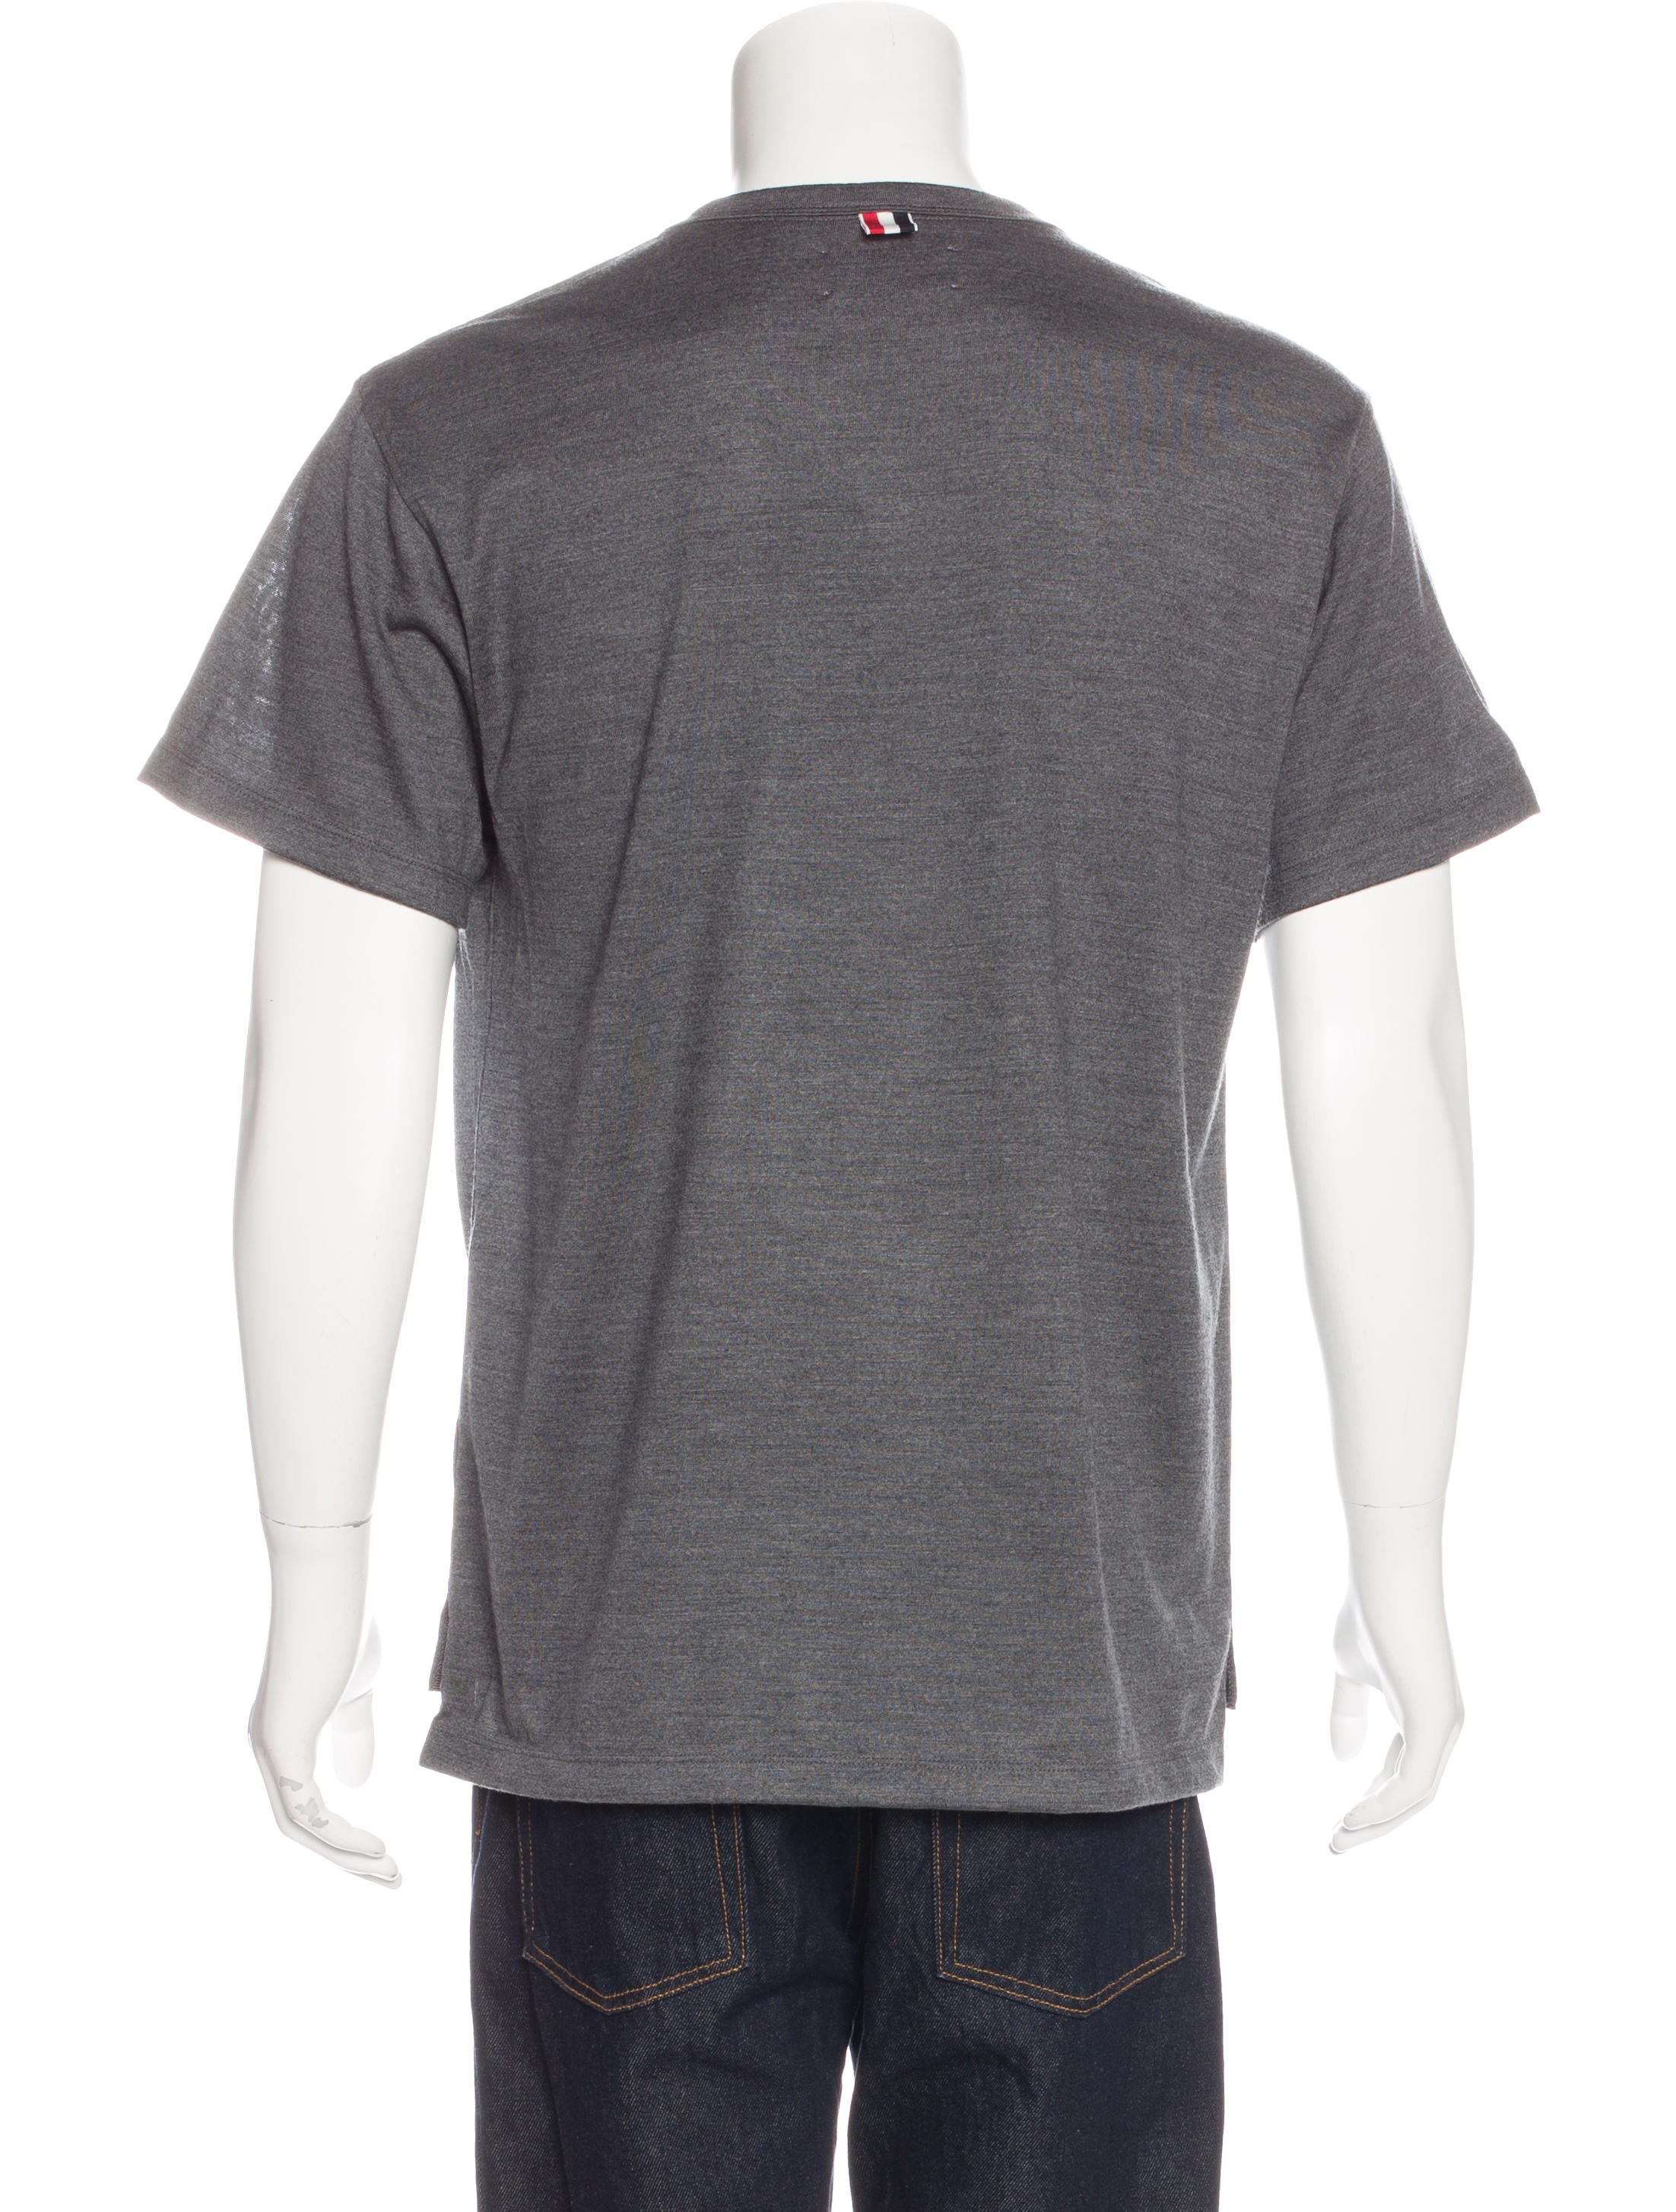 Thom browne crew neck short sleeve t shirt w tags for Thom browne t shirt